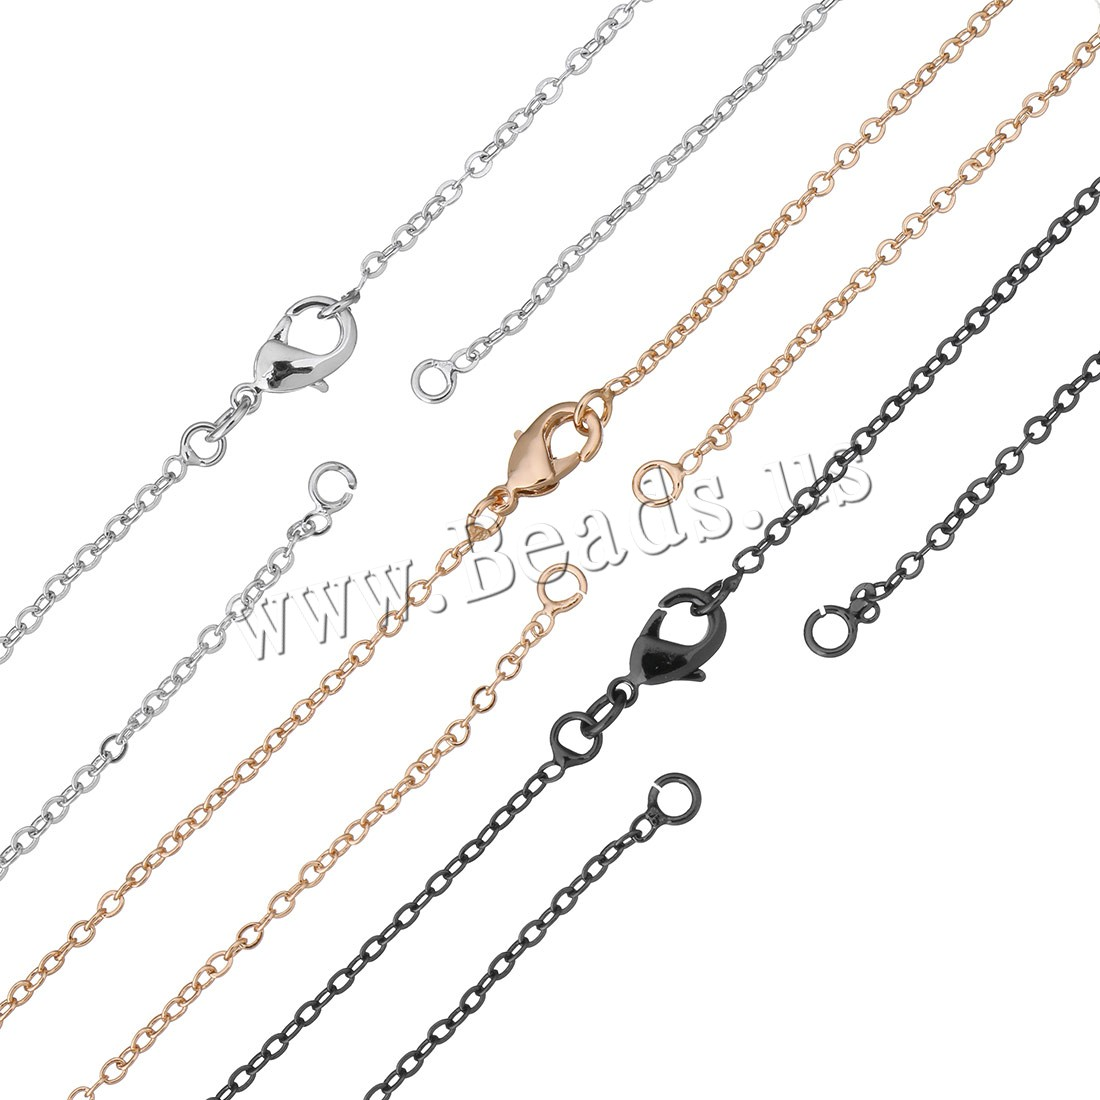 Brass Necklace Findings plated oval chain colors choice 2x1.80x0.50mm Length:Approx 18 Inch 50Strands/Bag Sold Bag